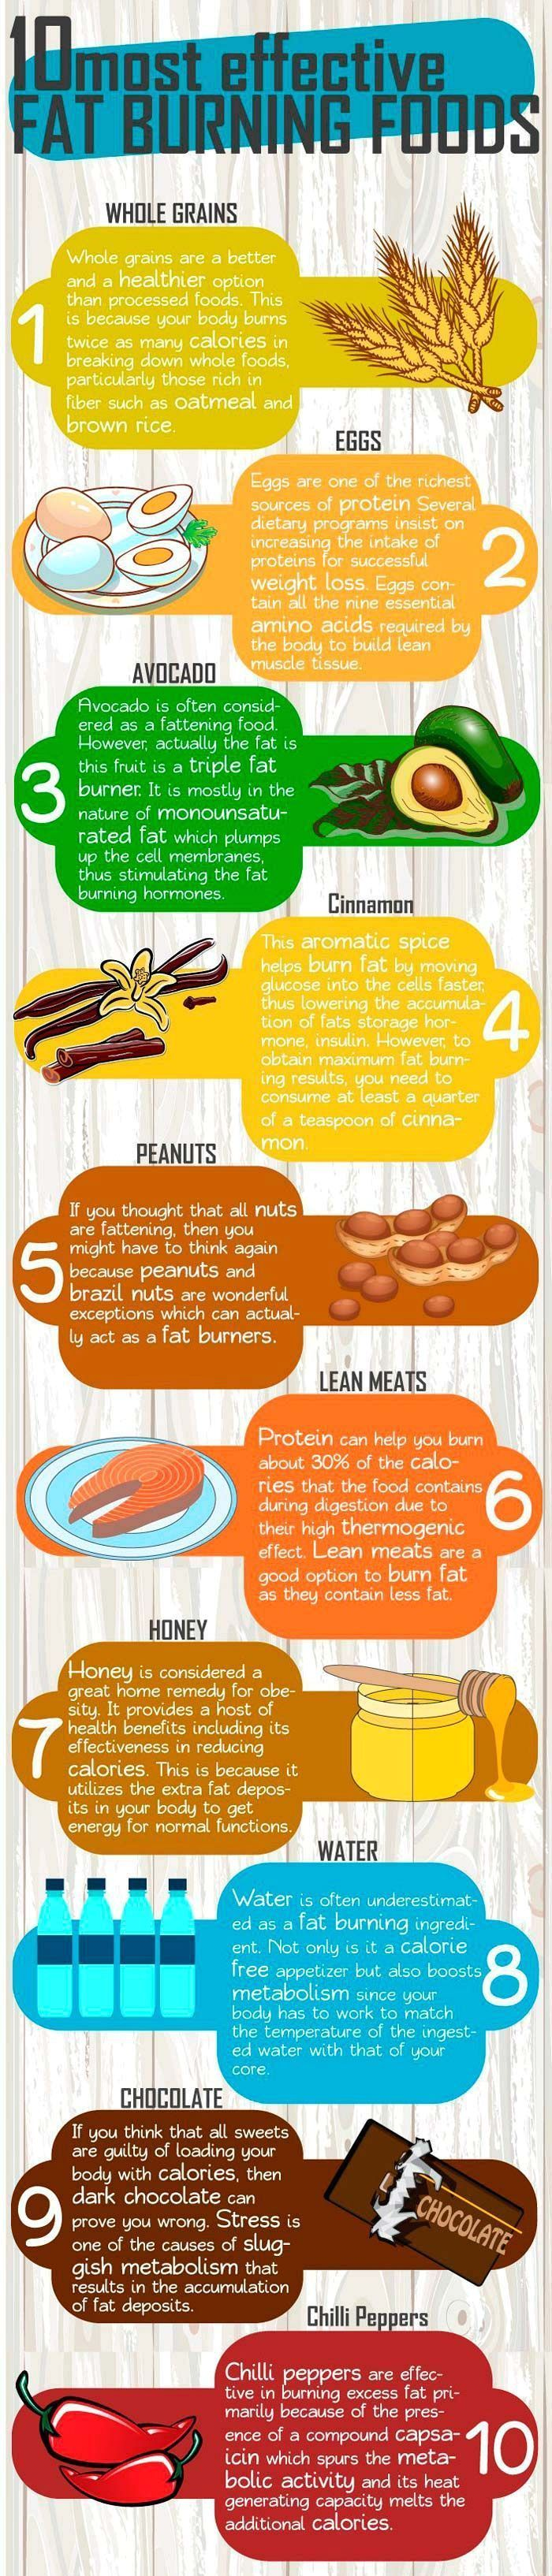 Fat-burning foods. 10 most effective fat burning foods